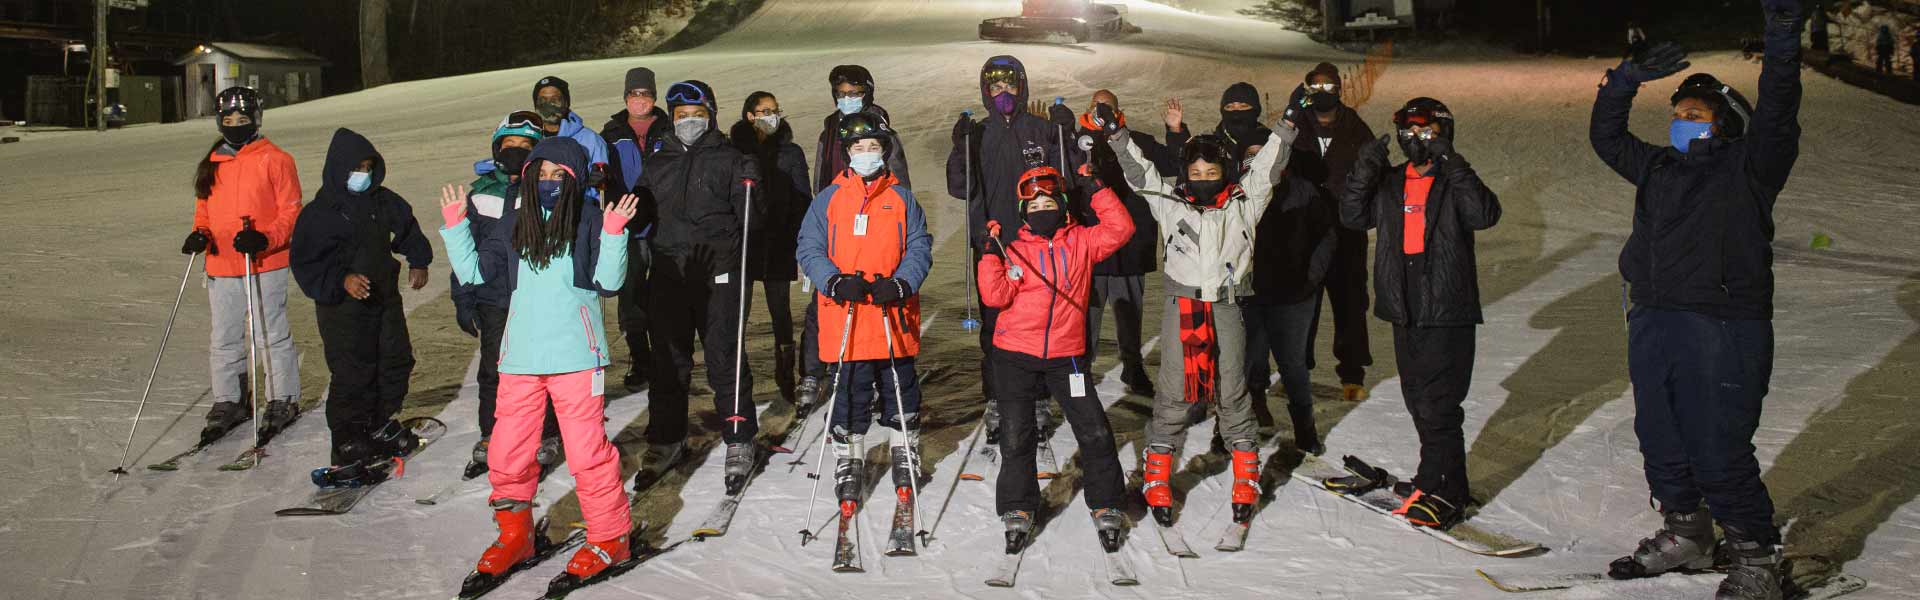 Weekly Group of skiers and snowboarders